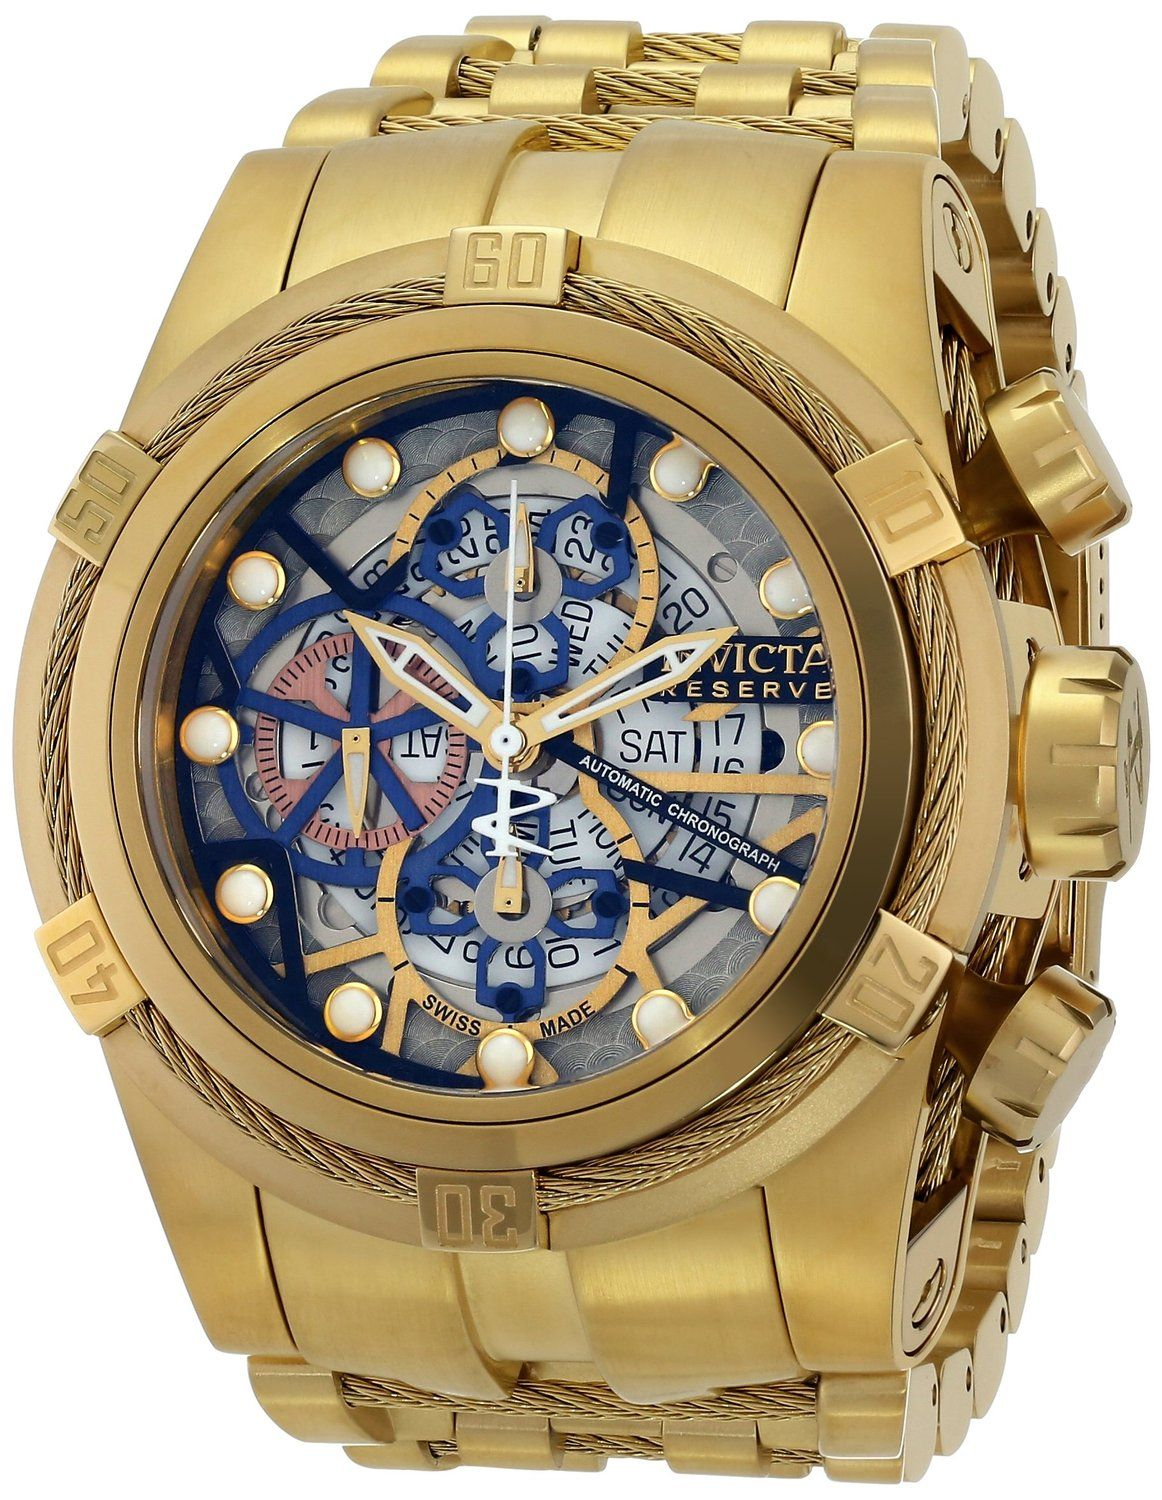 Gold watches for men Invicta | Gold watches | Pinterest ...